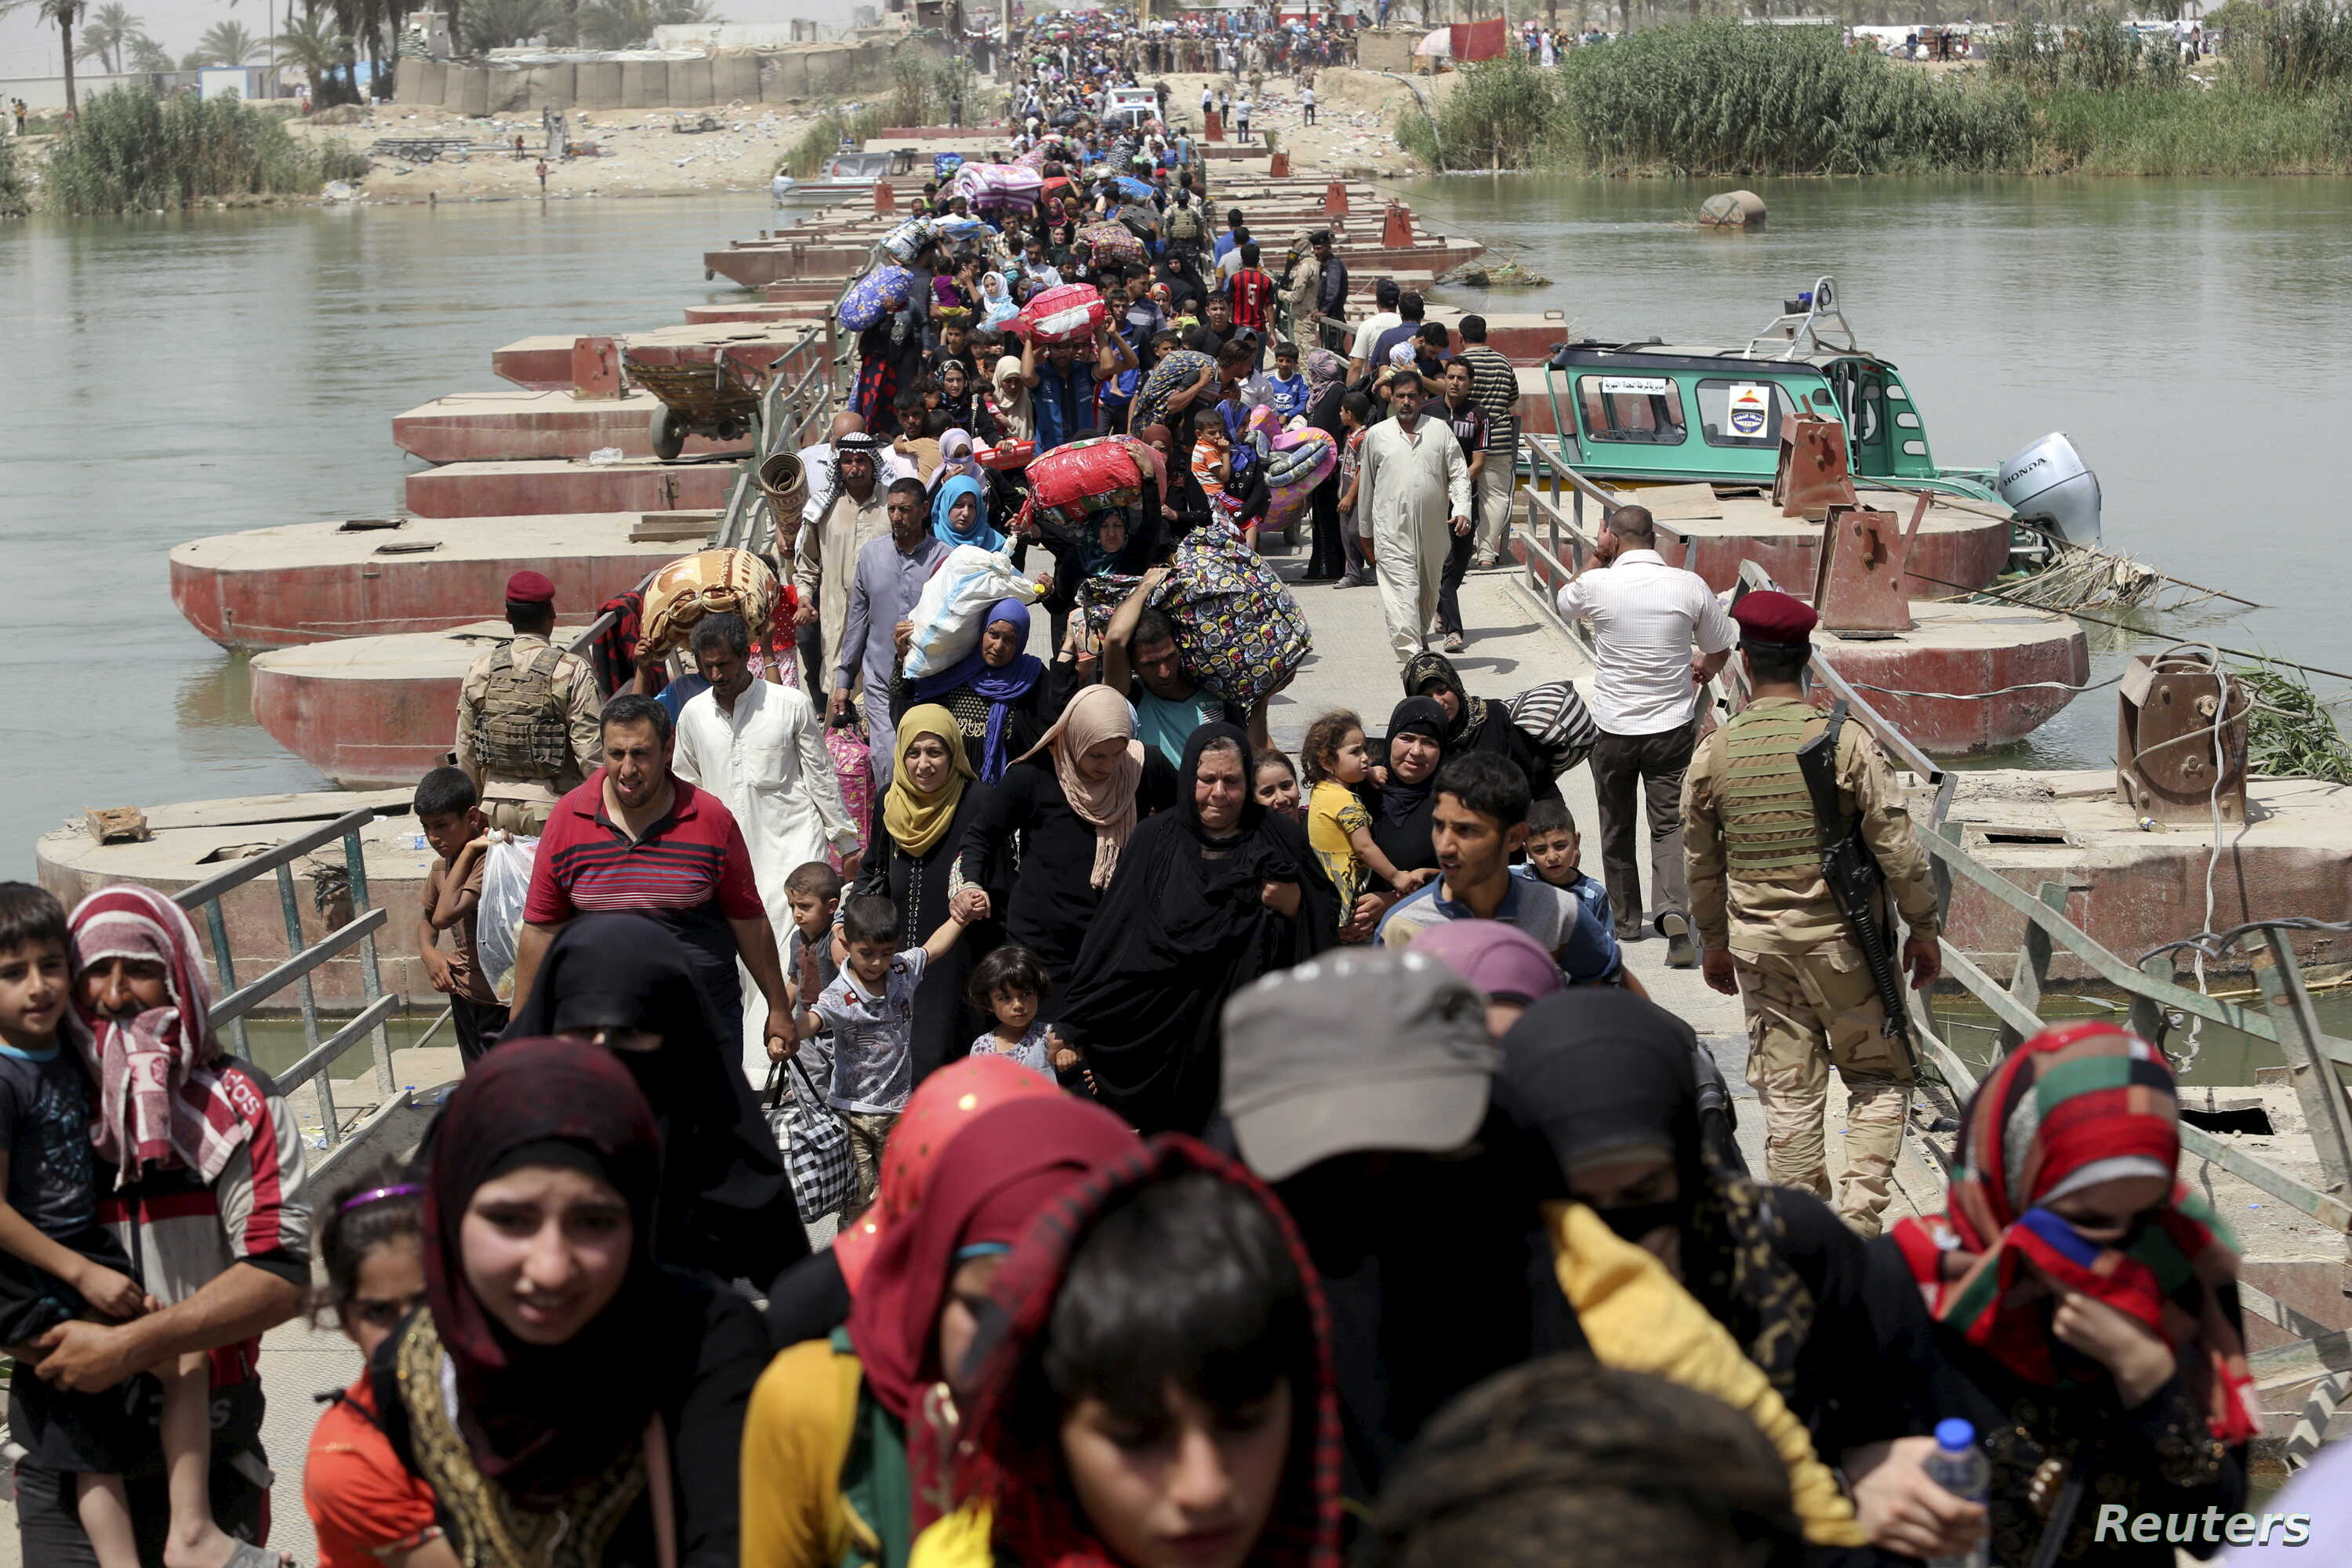 Displaced Sunni people fleeing Ramadi cross a bridge outside Baghdad, May 24, 2015. Iraqi forces recaptured territory from advancing Islamic State militants near the recently fallen city of Ramadi on Sunday.